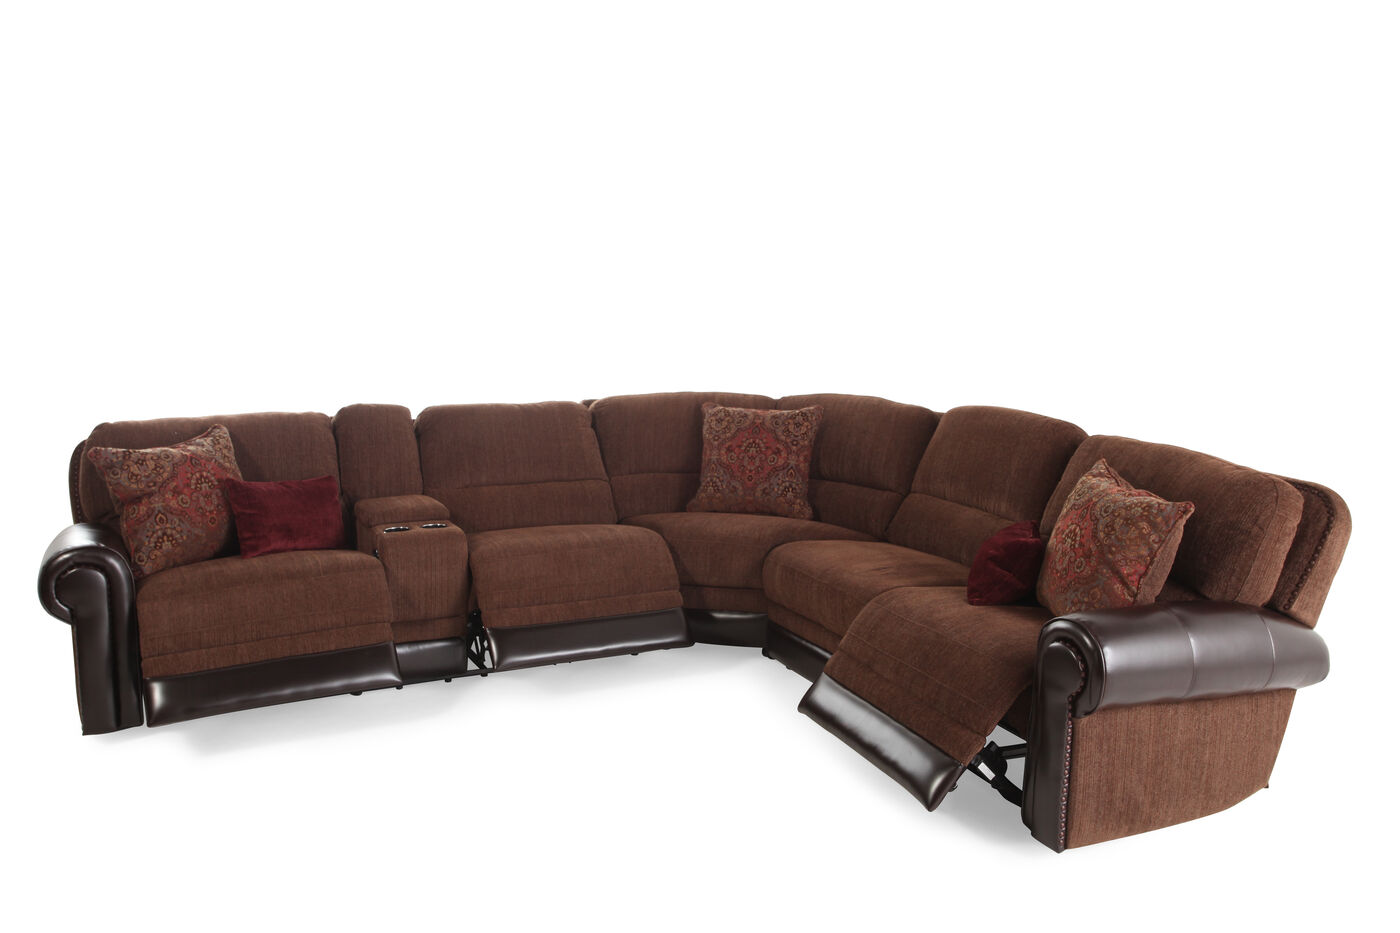 Traditional 98 Tapestry Patterned Power Reclining Sectional In  # Muebles Seys Verona